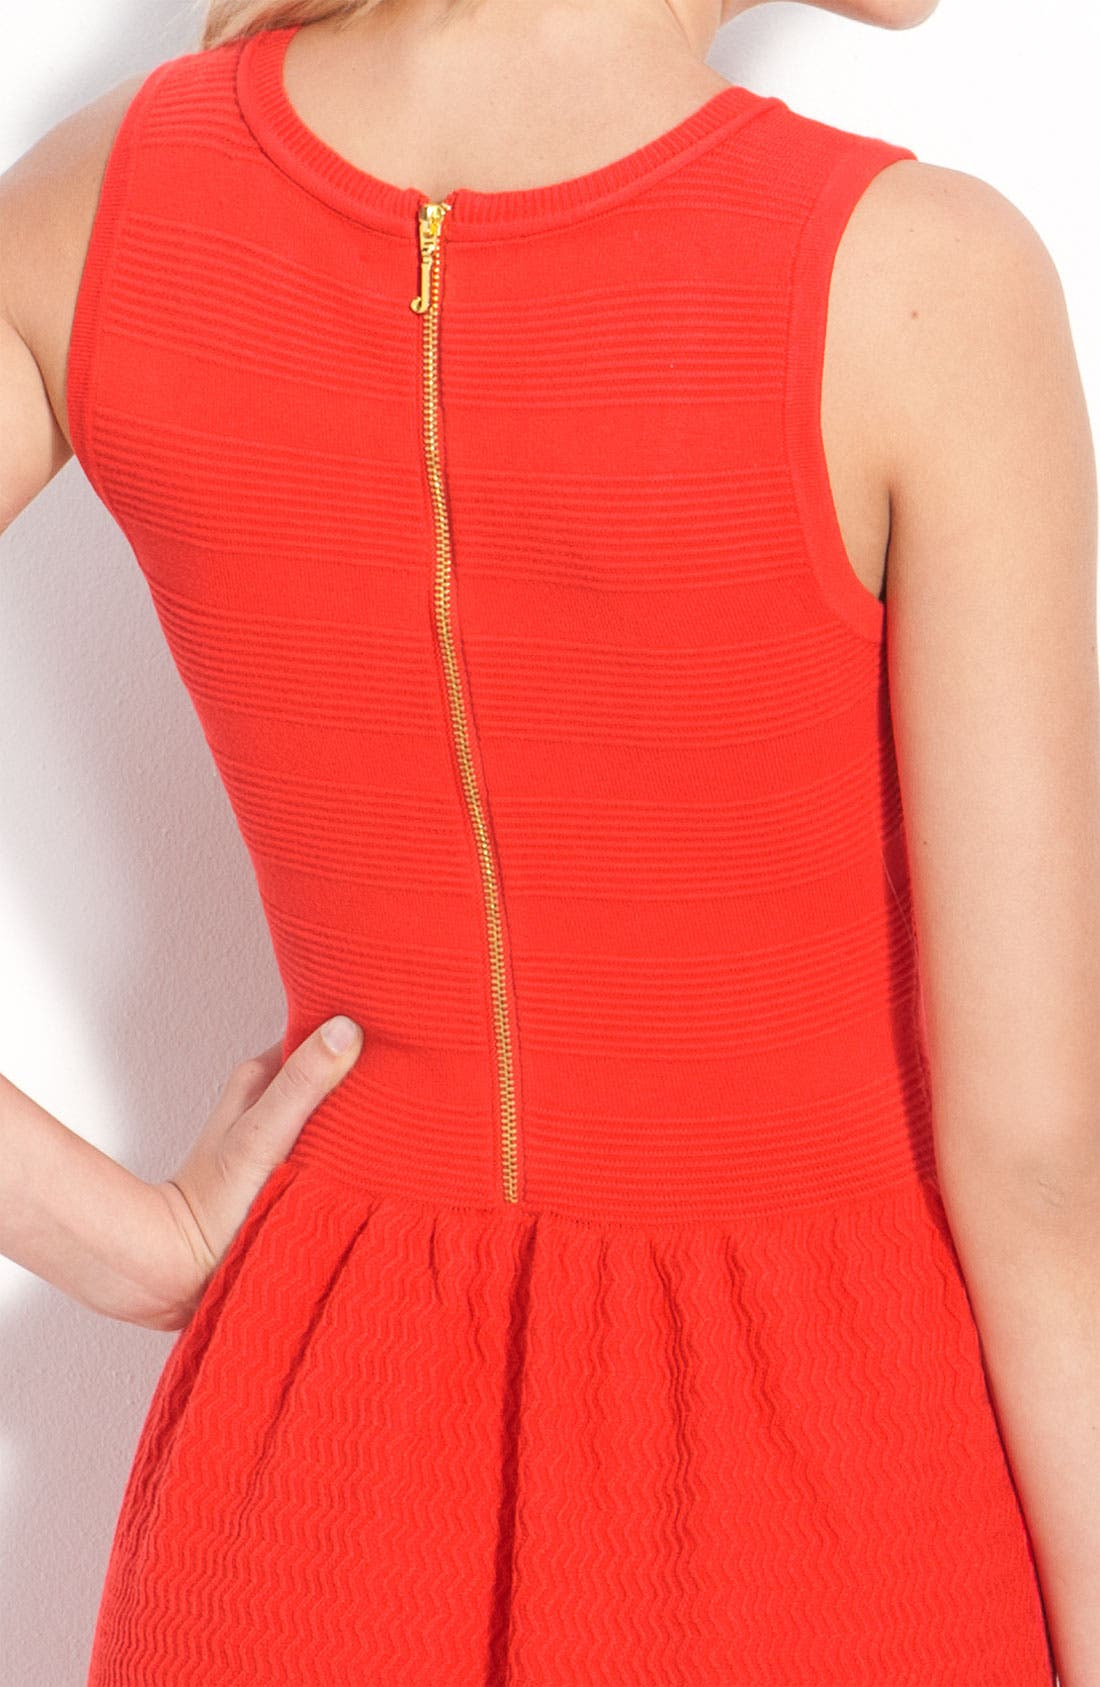 Alternate Image 3  - Juicy Couture Sleeveless Textured Dress